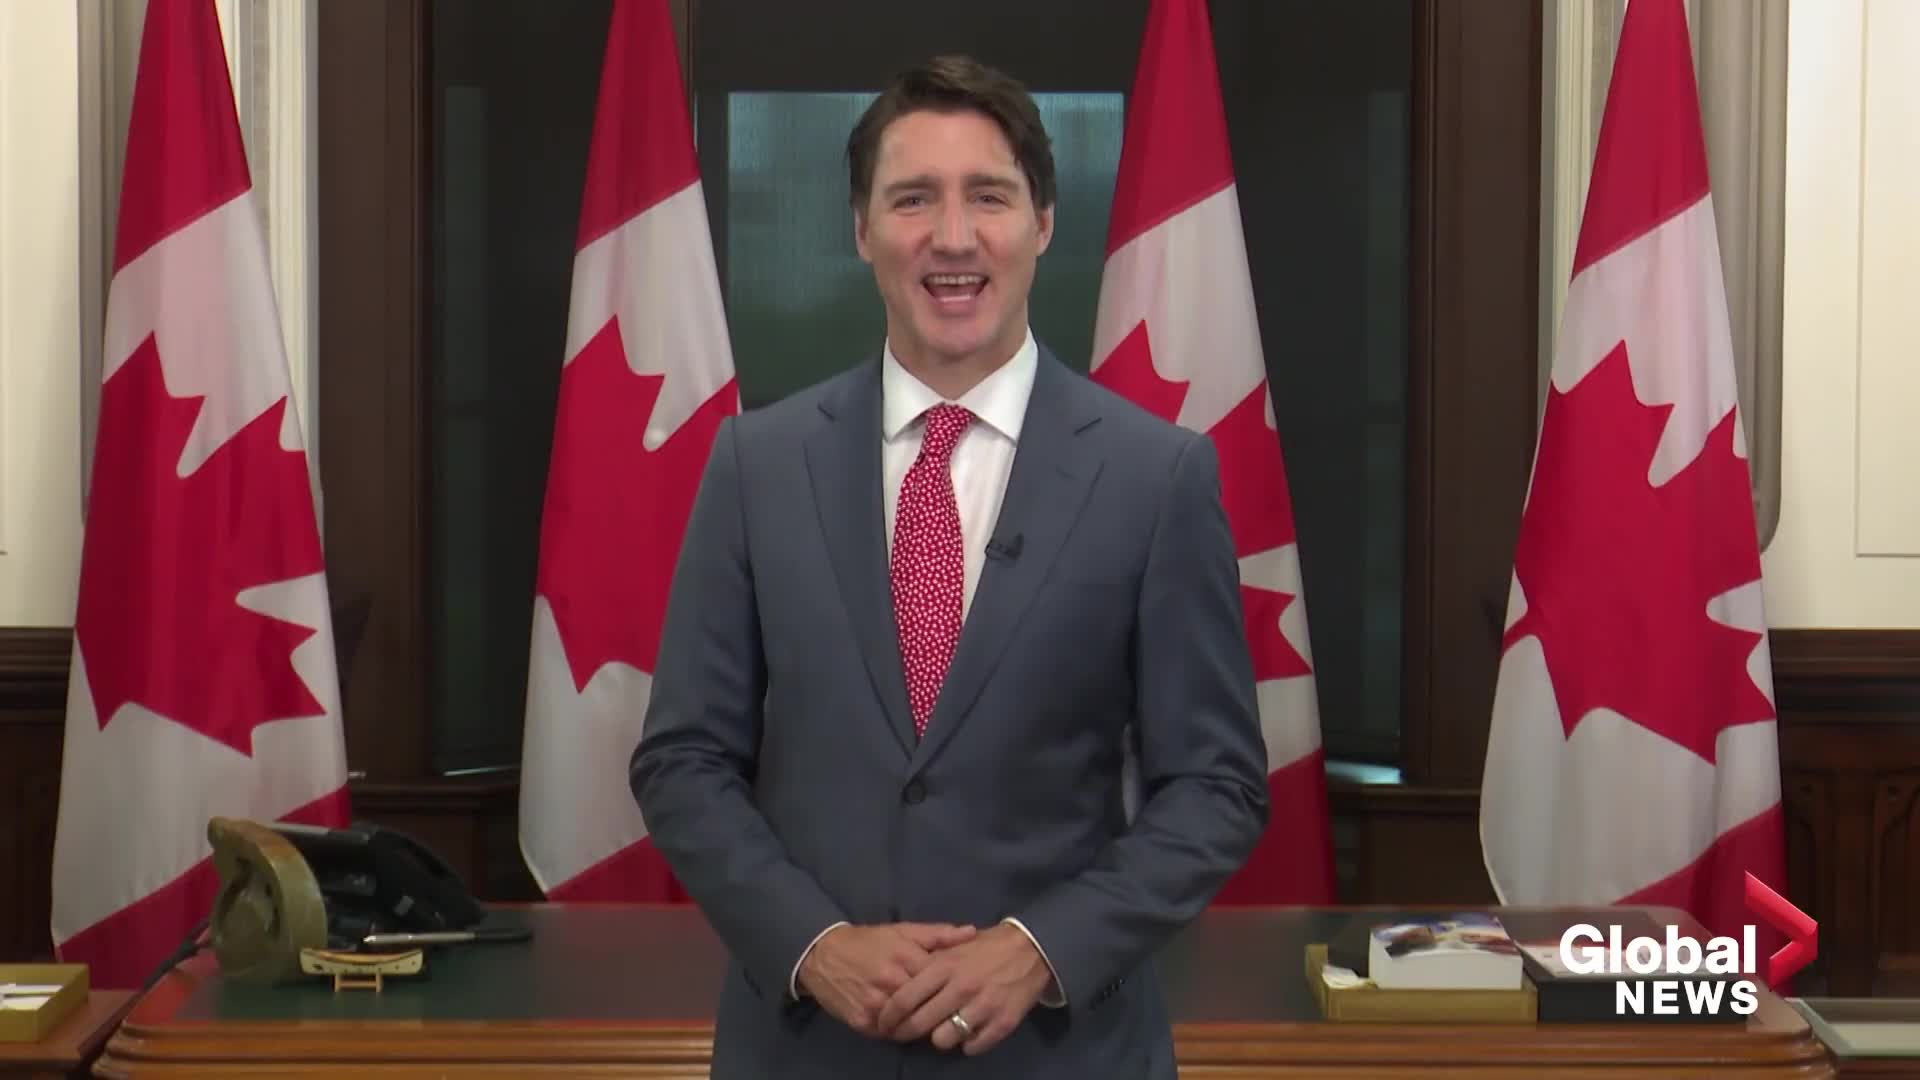 """🇨🇦🔥Trudeau the Pansyass Tyrant:  Clean-Shaven Commie tries to Guilt Canadians, for Canada Day """"Gift"""" Message"""